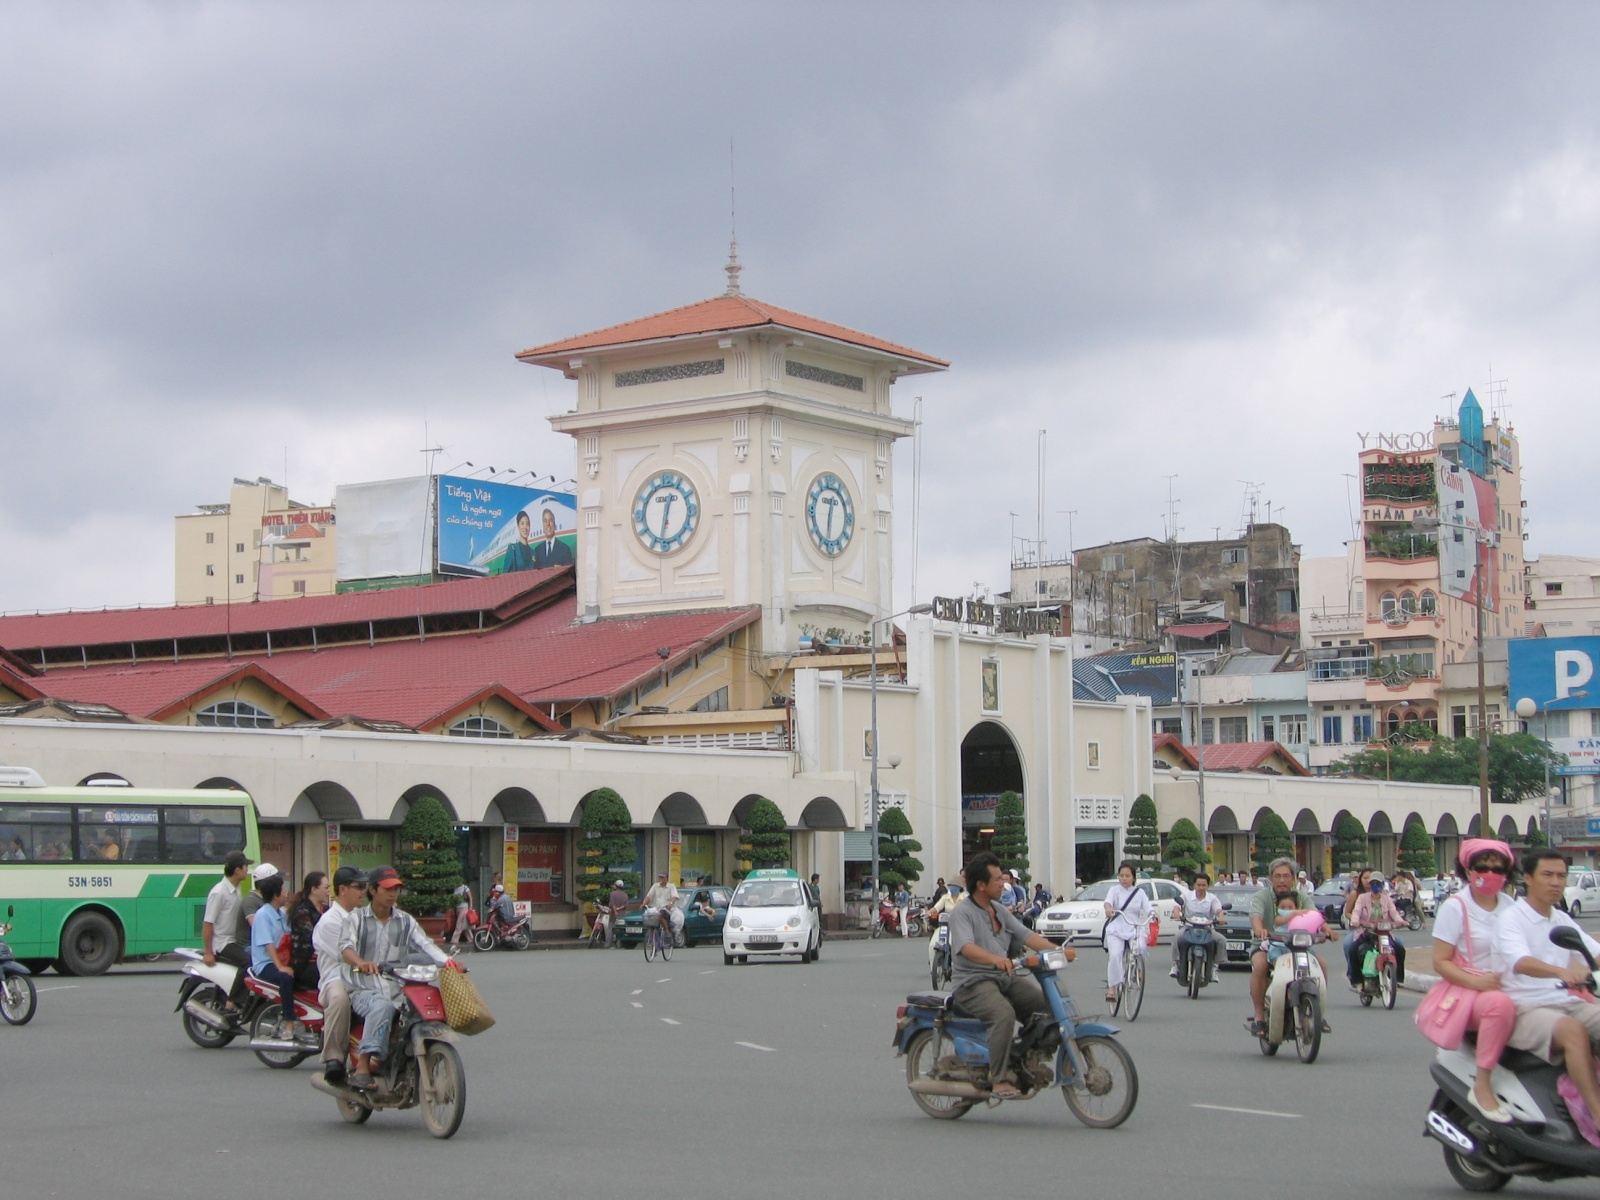 https://upload.wikimedia.org/wikipedia/commons/a/a5/HCMC_Ben_Thanh.jpg